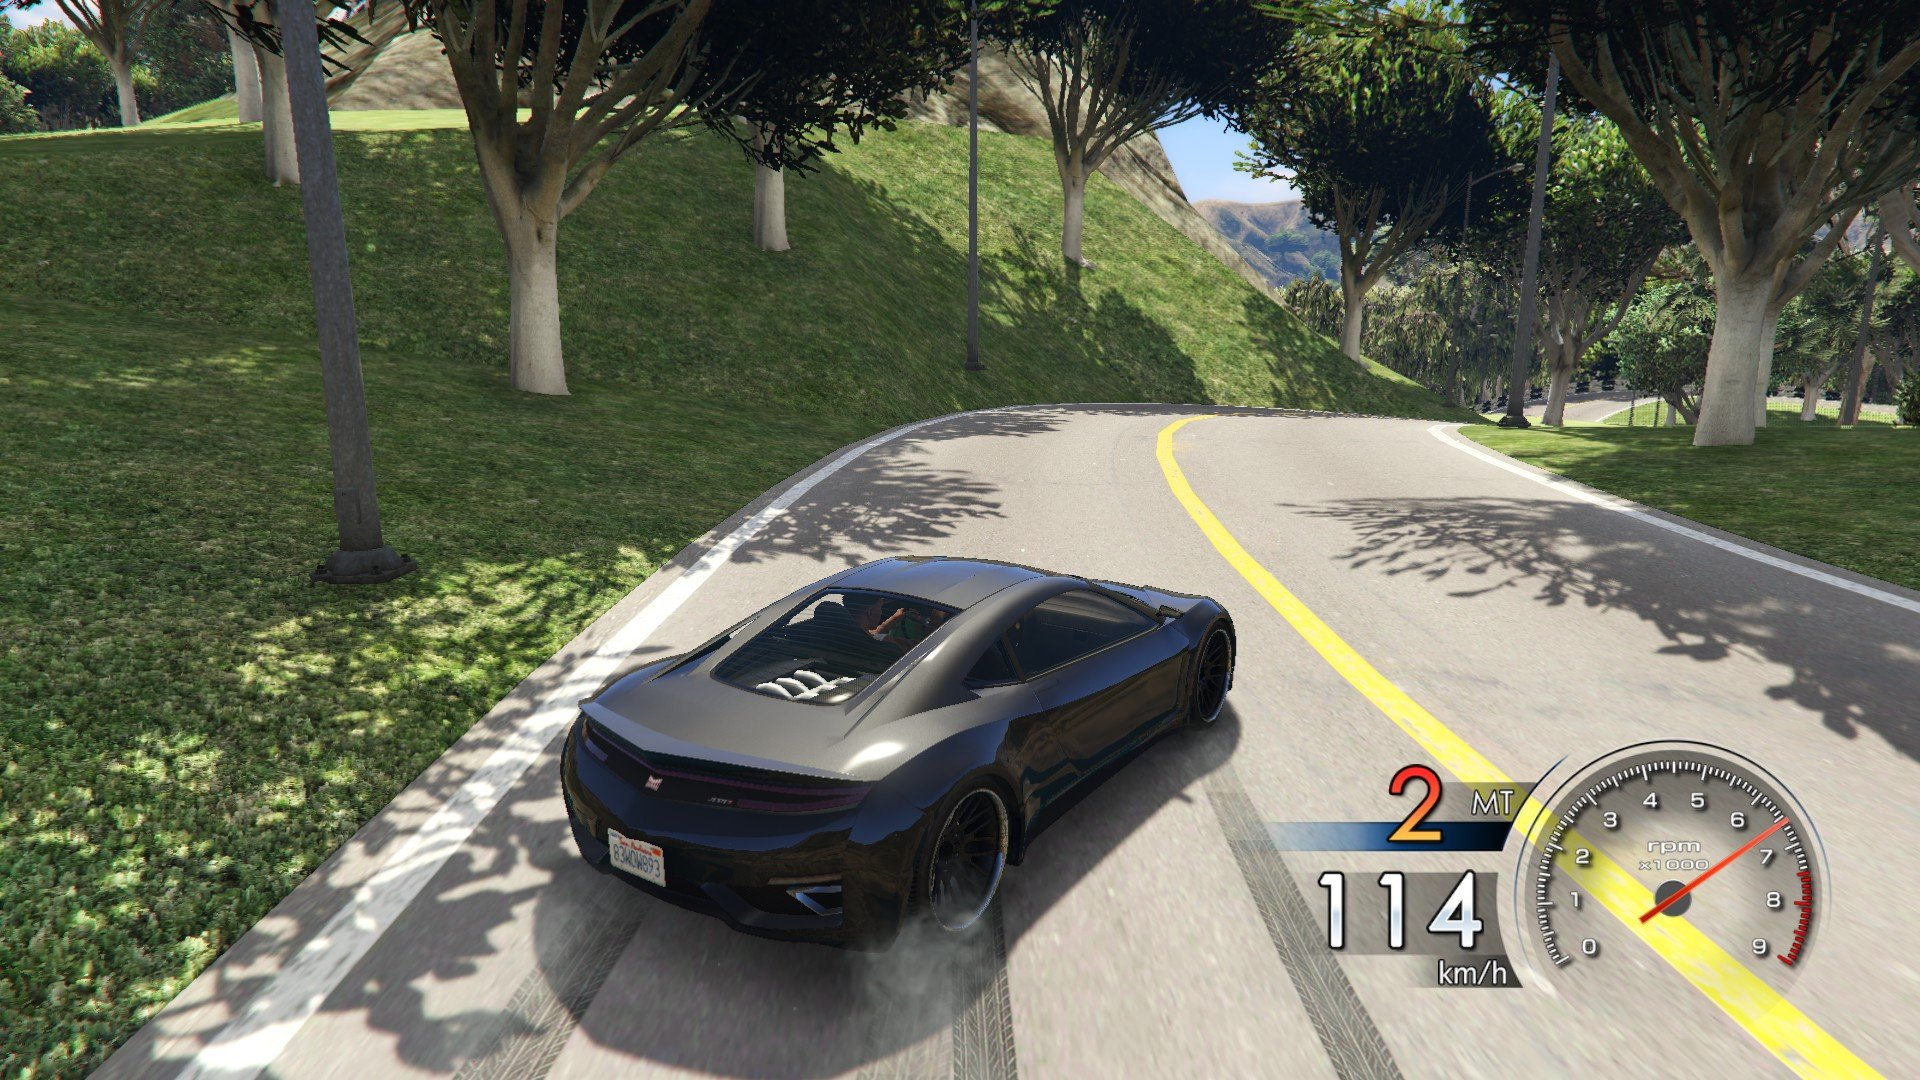 Initial D 6 Aa Speedometer Hud Gta5 Mods Com Make Your Own Beautiful  HD Wallpapers, Images Over 1000+ [ralydesign.ml]